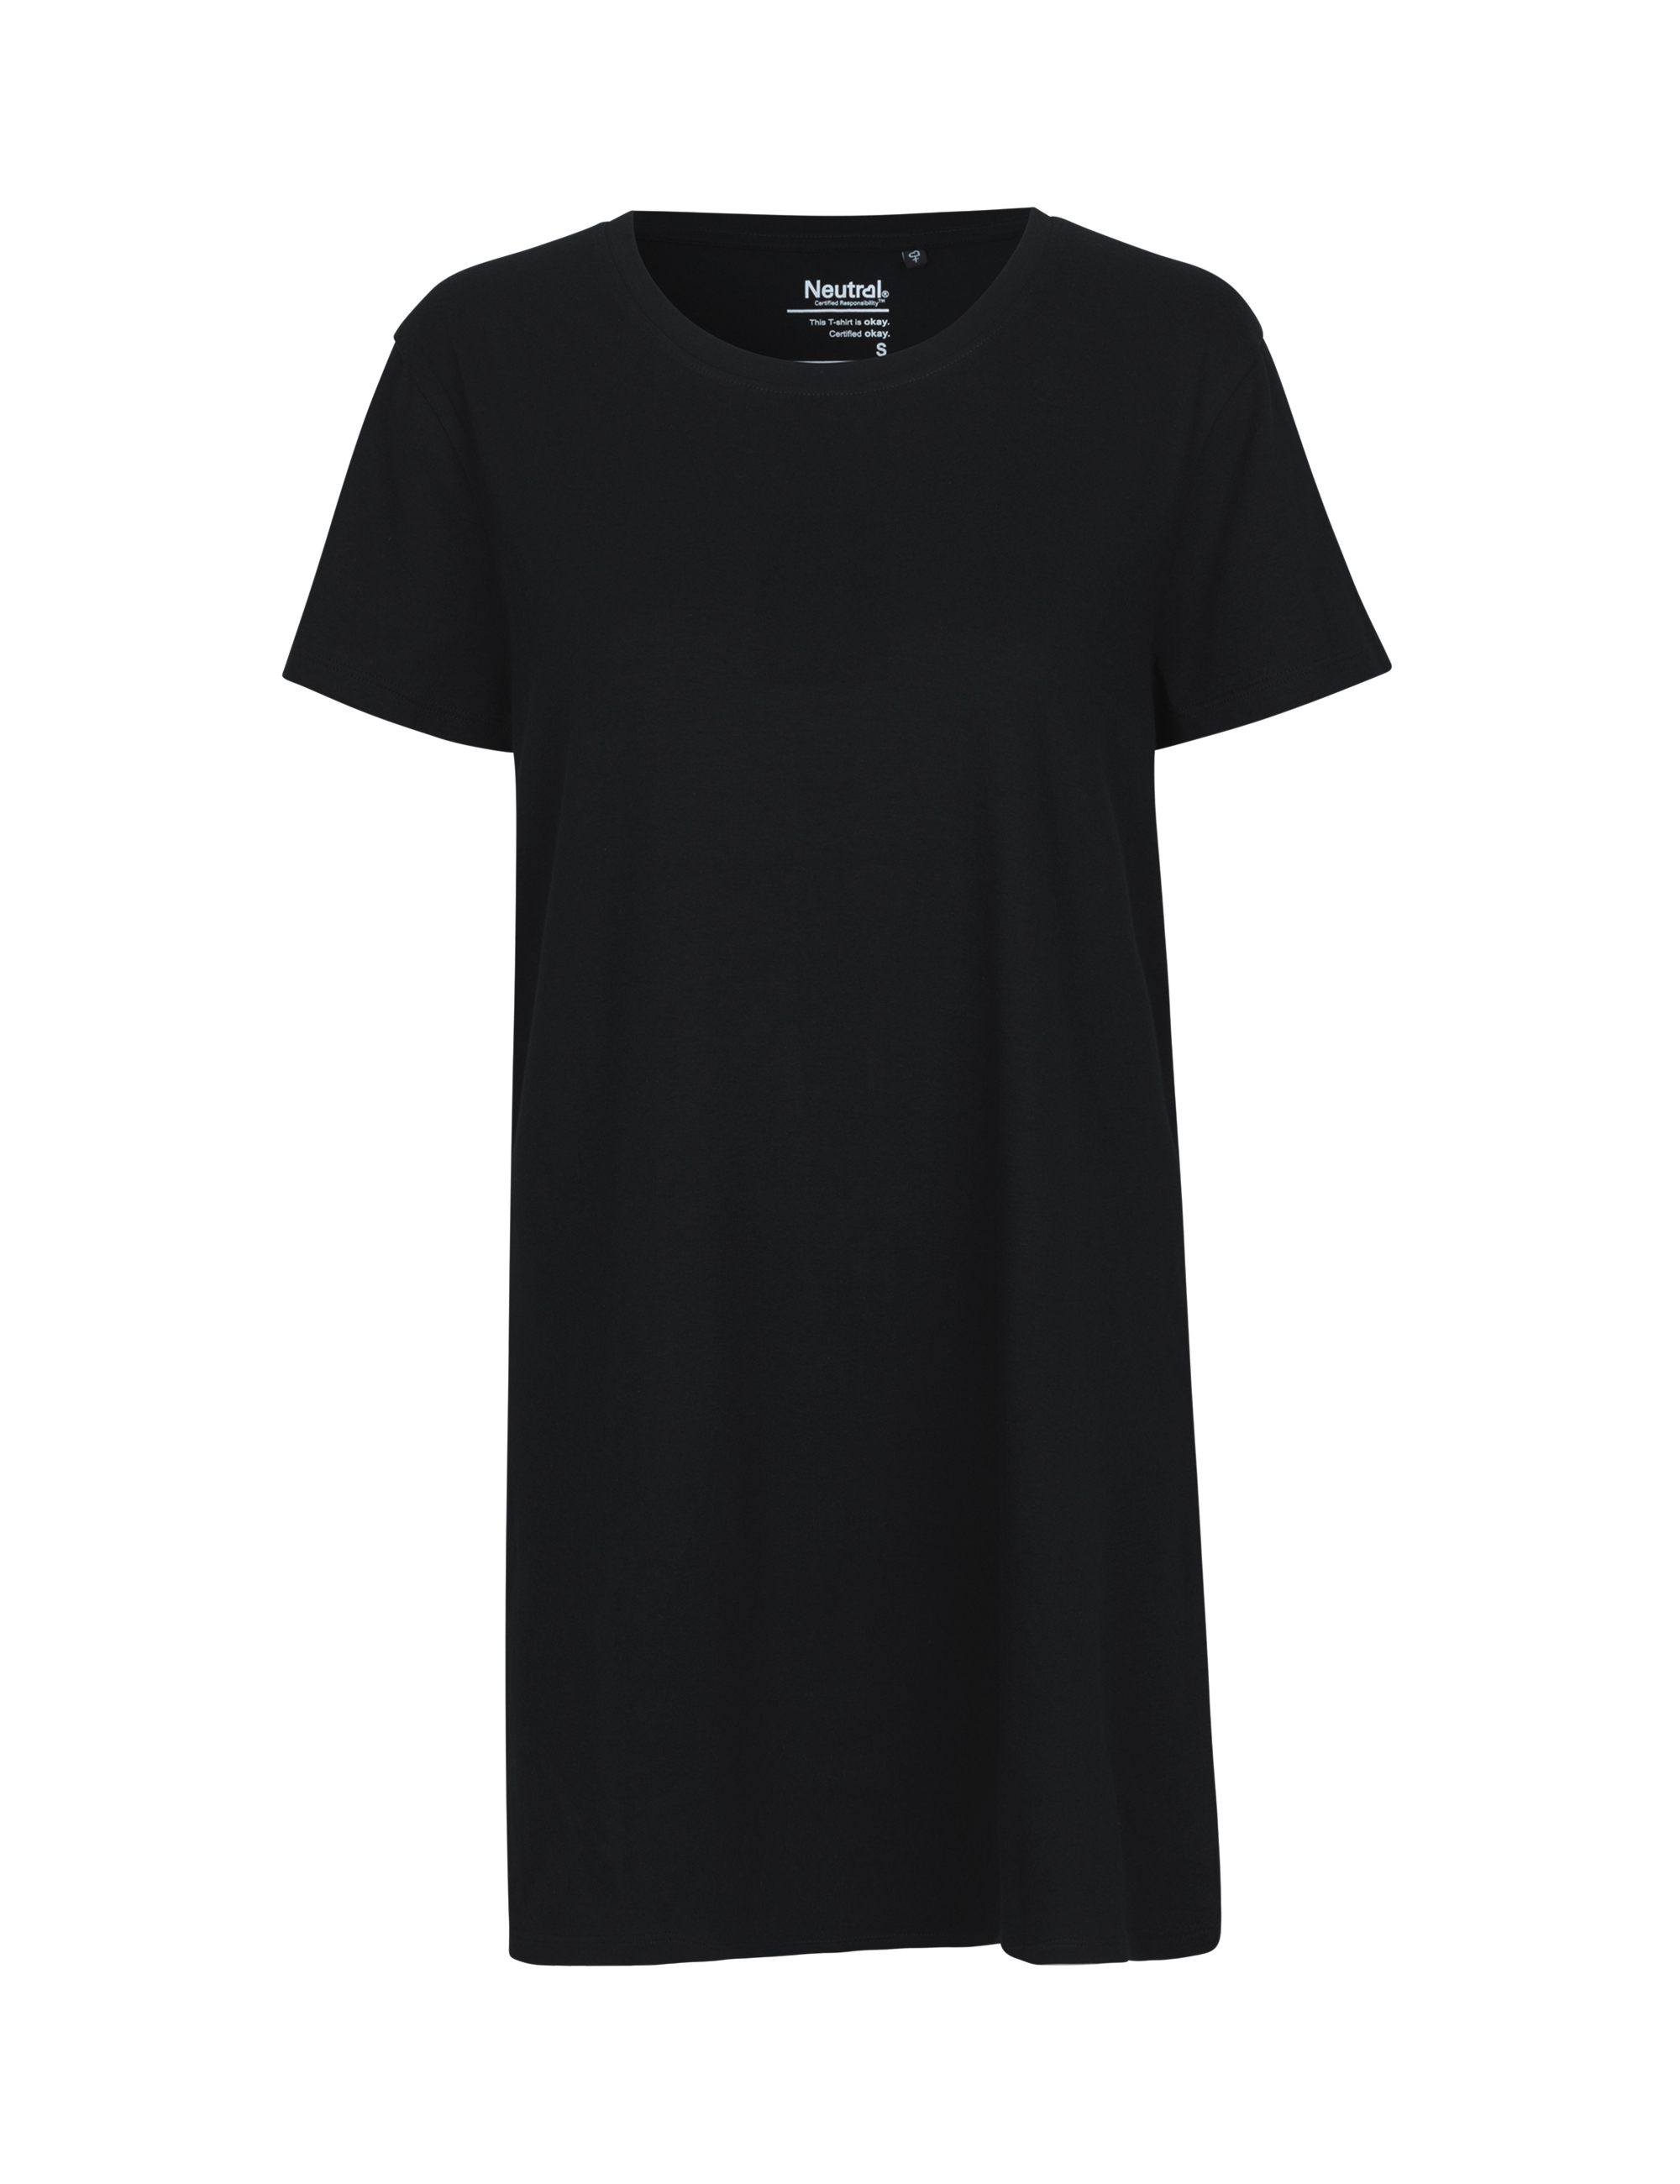 O81020 Ladies Long Length T-shirt i Black